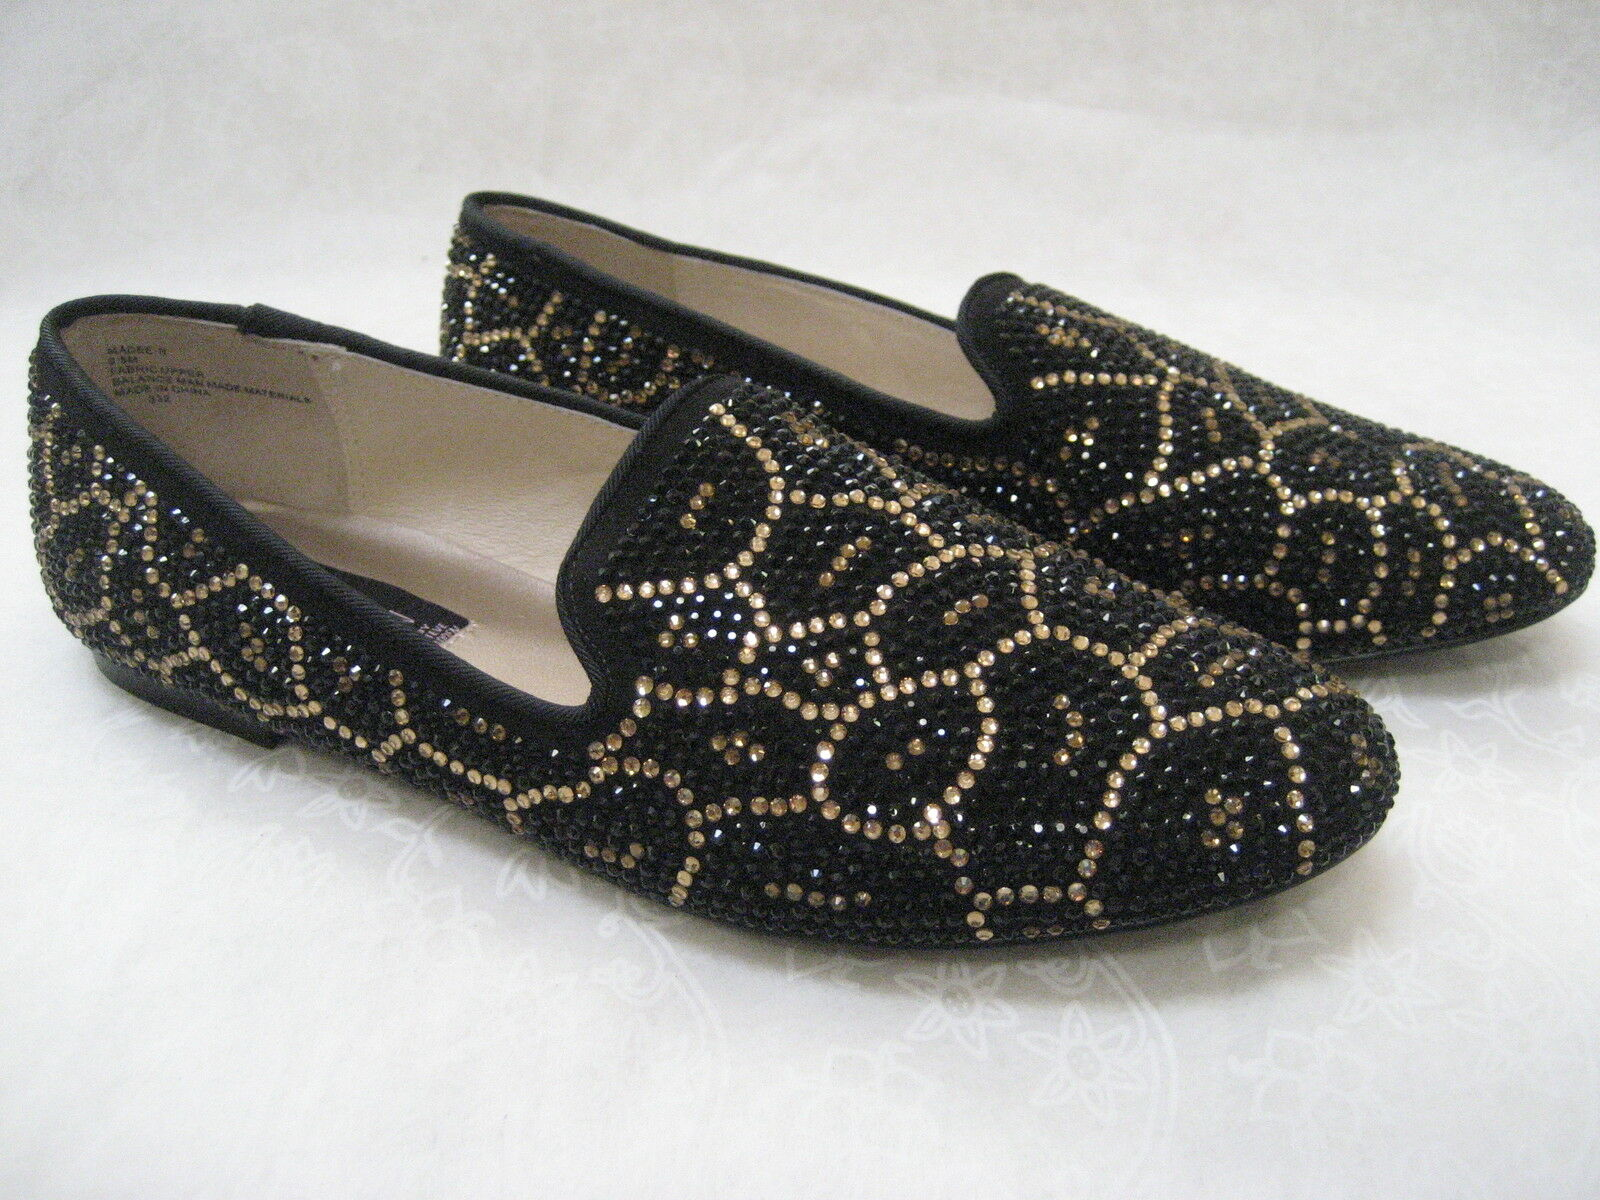 STEVEN BY STEVE MADDEN LEOPARD RHINESTONE FLATS chaussures Taille 9 1 2 W - NEW